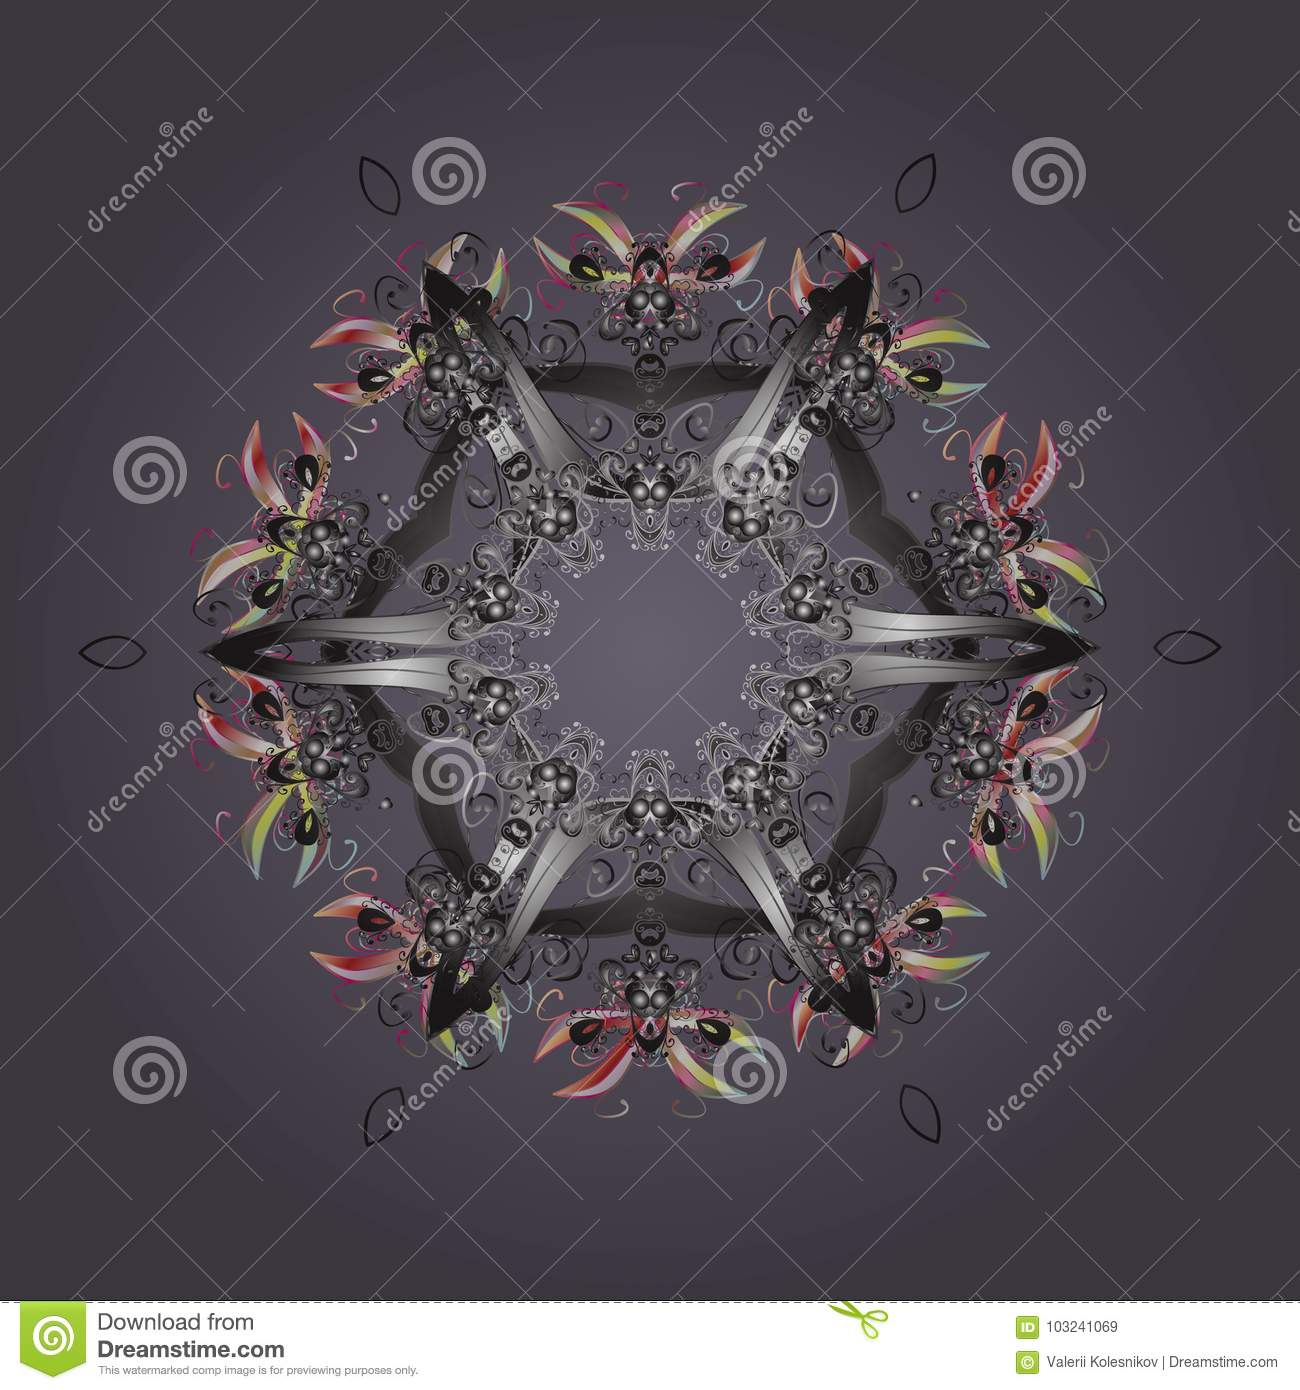 holiday design for christmas and new year fashion prints neutral gray and pink snowflakes vector christmas background with snowflakes abstract